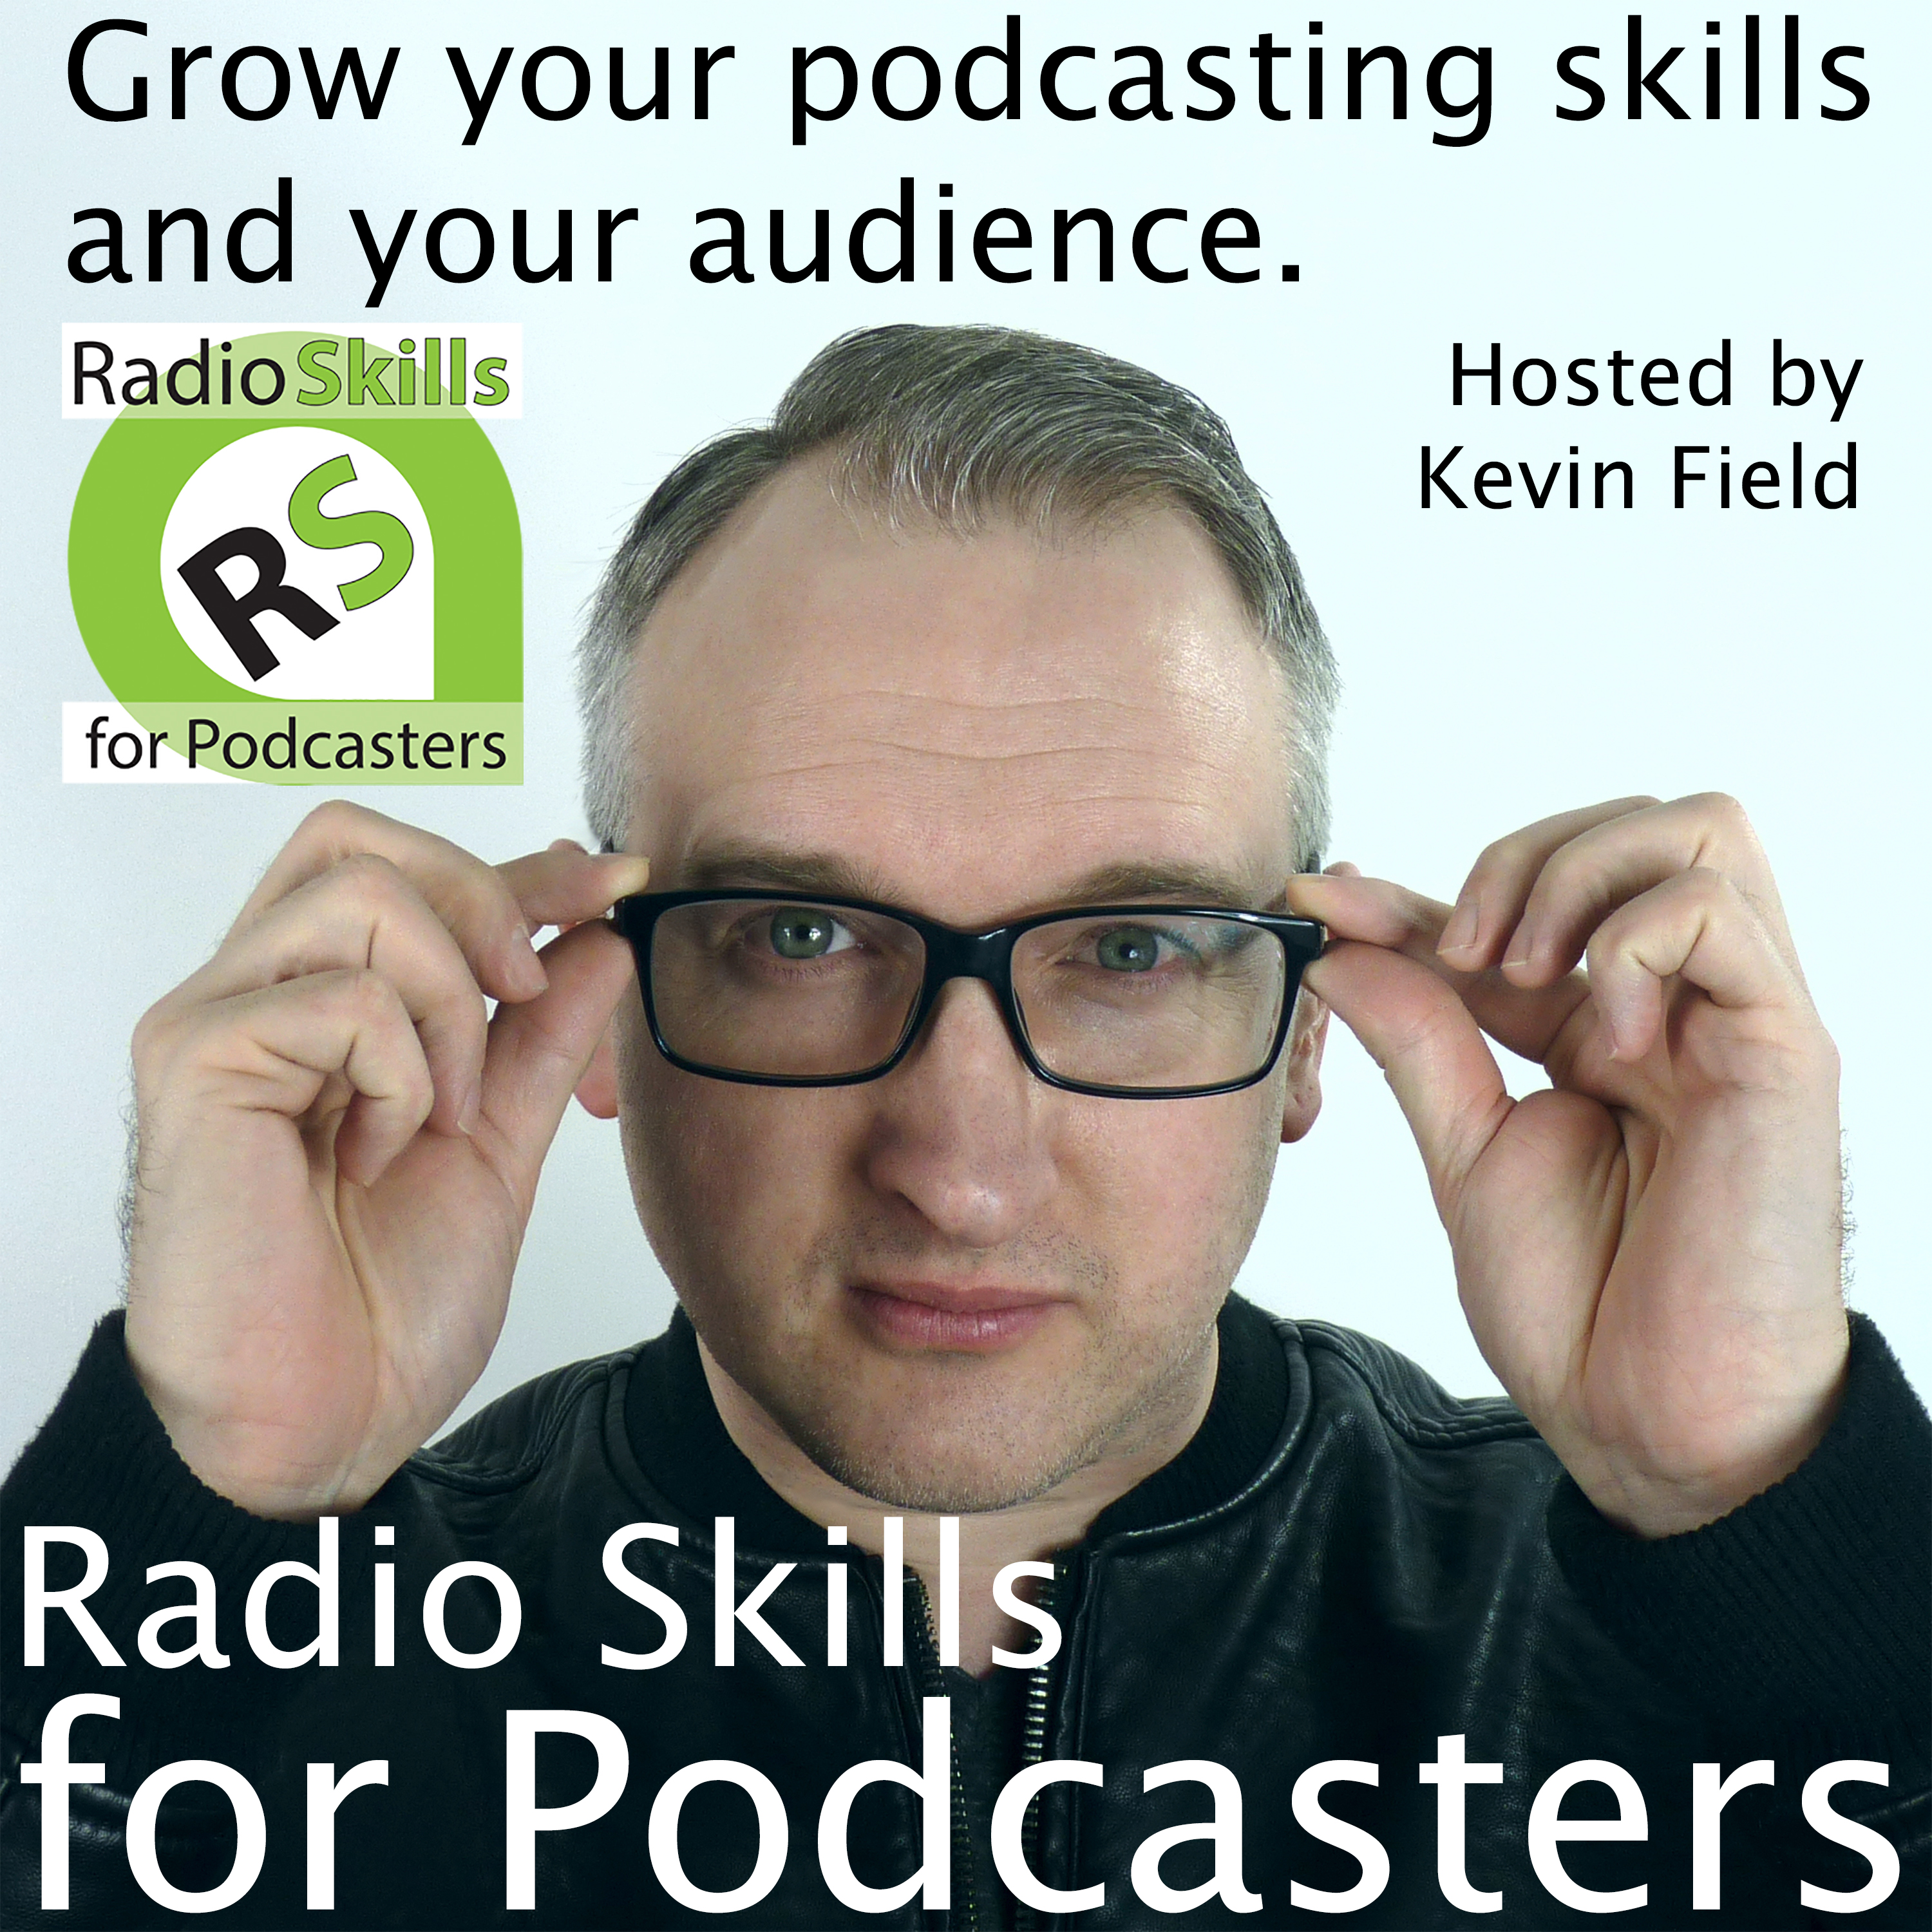 Radio Skills for Podcasters - Learn the secrets of the radio industry and create POWERFUL Podcasts